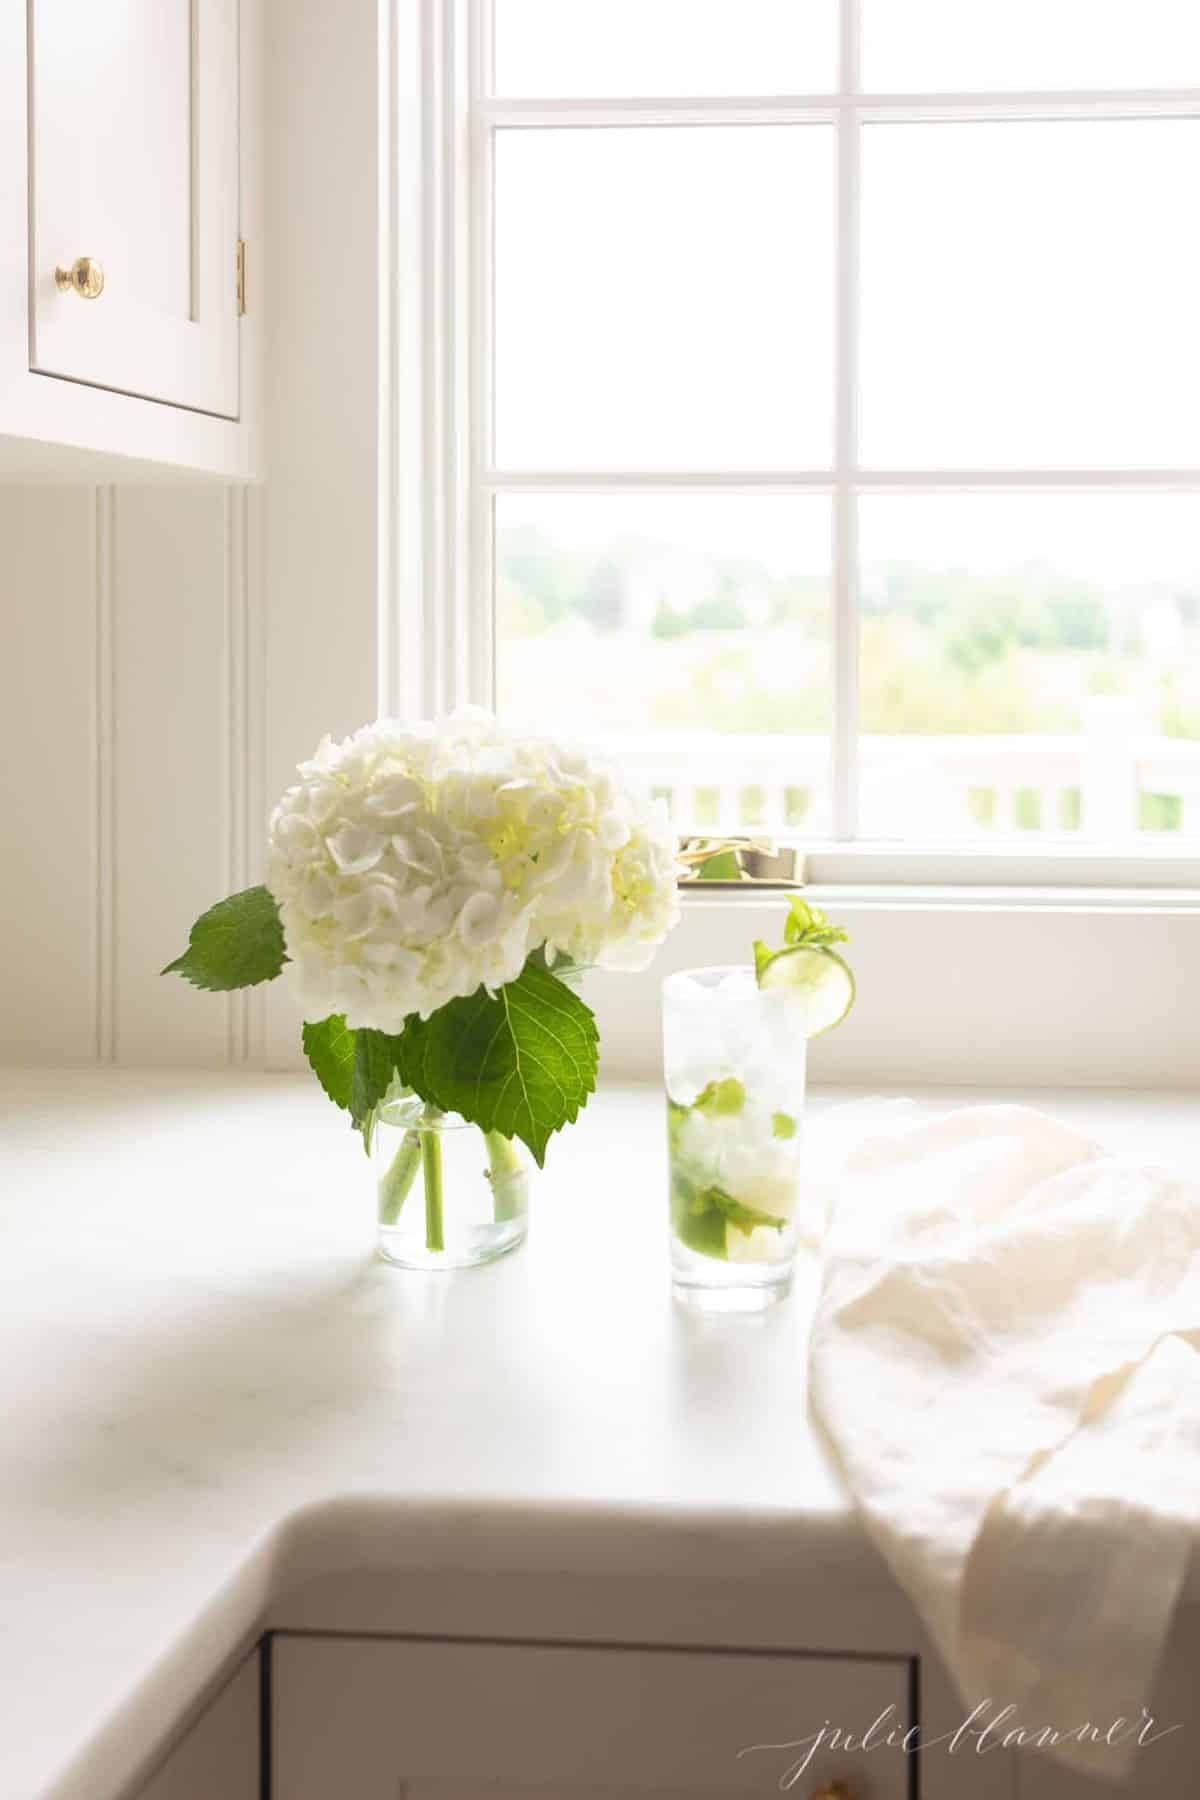 white countertop featuring a vase of hydrangea and a tall clear glass with a mojito.